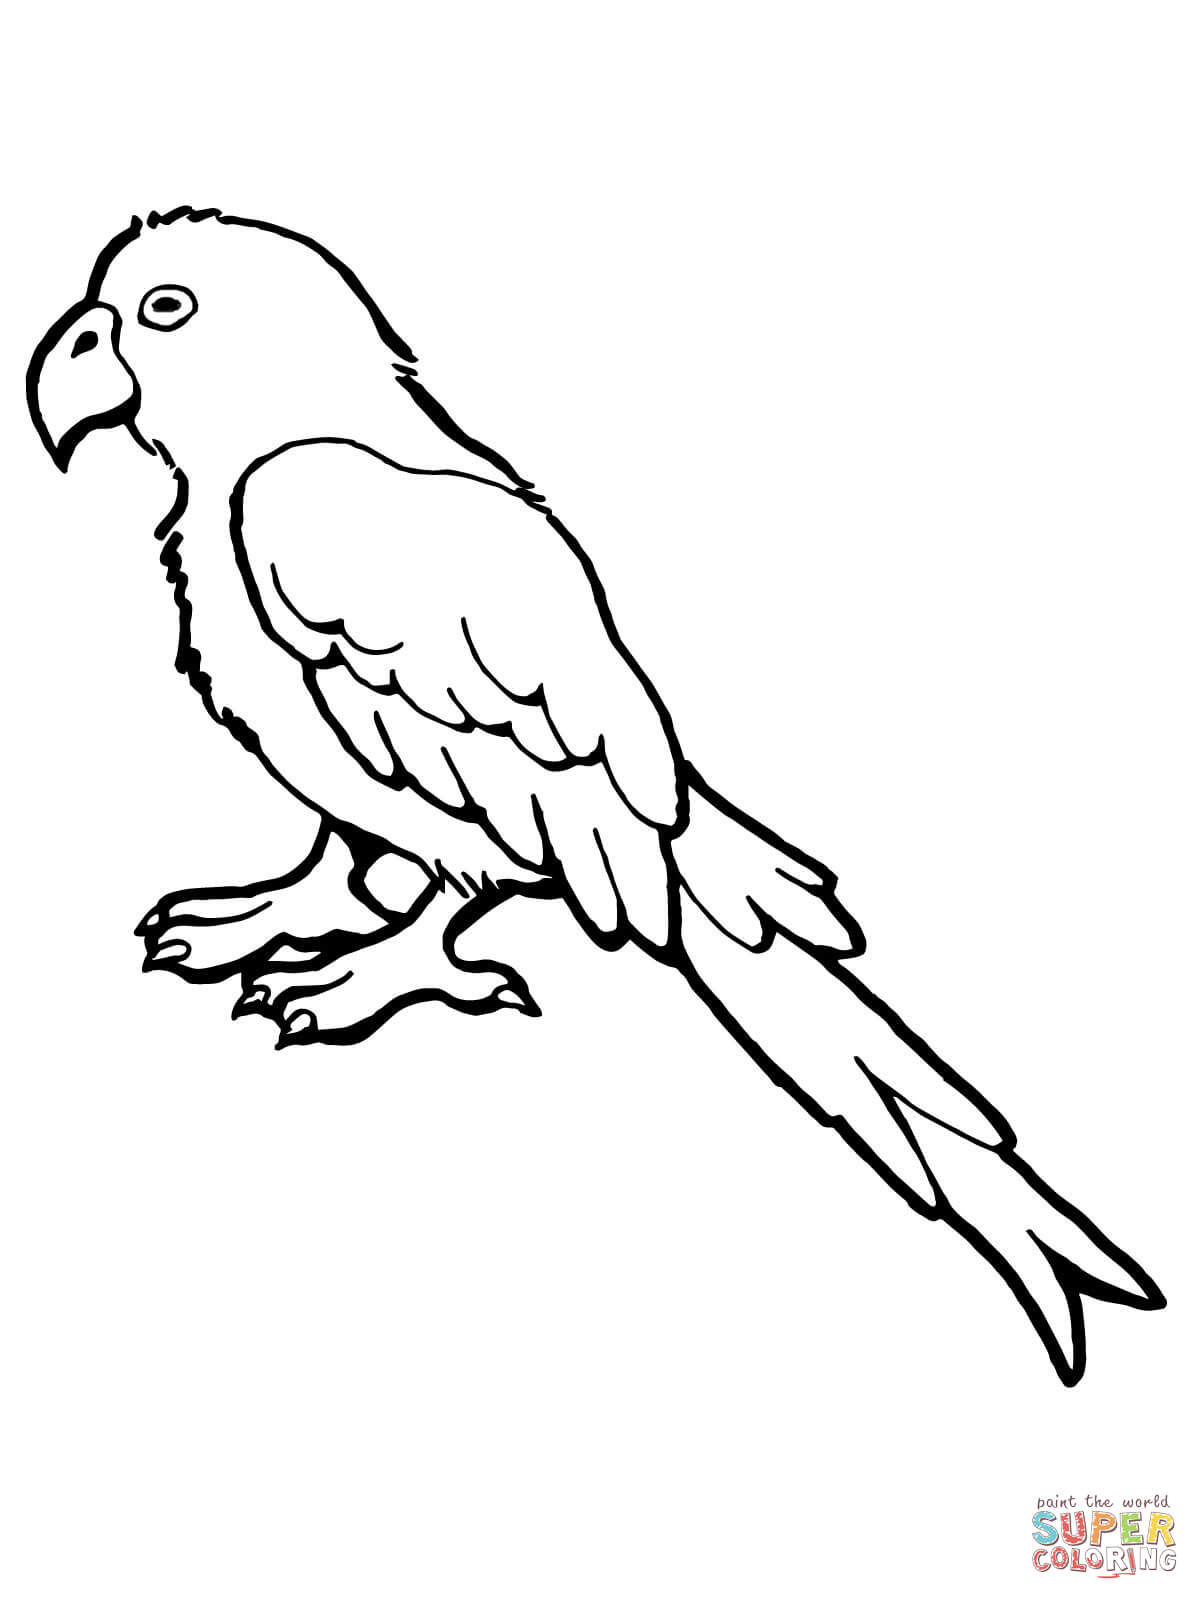 parrot outline bird outline drawing at getdrawings free download parrot outline